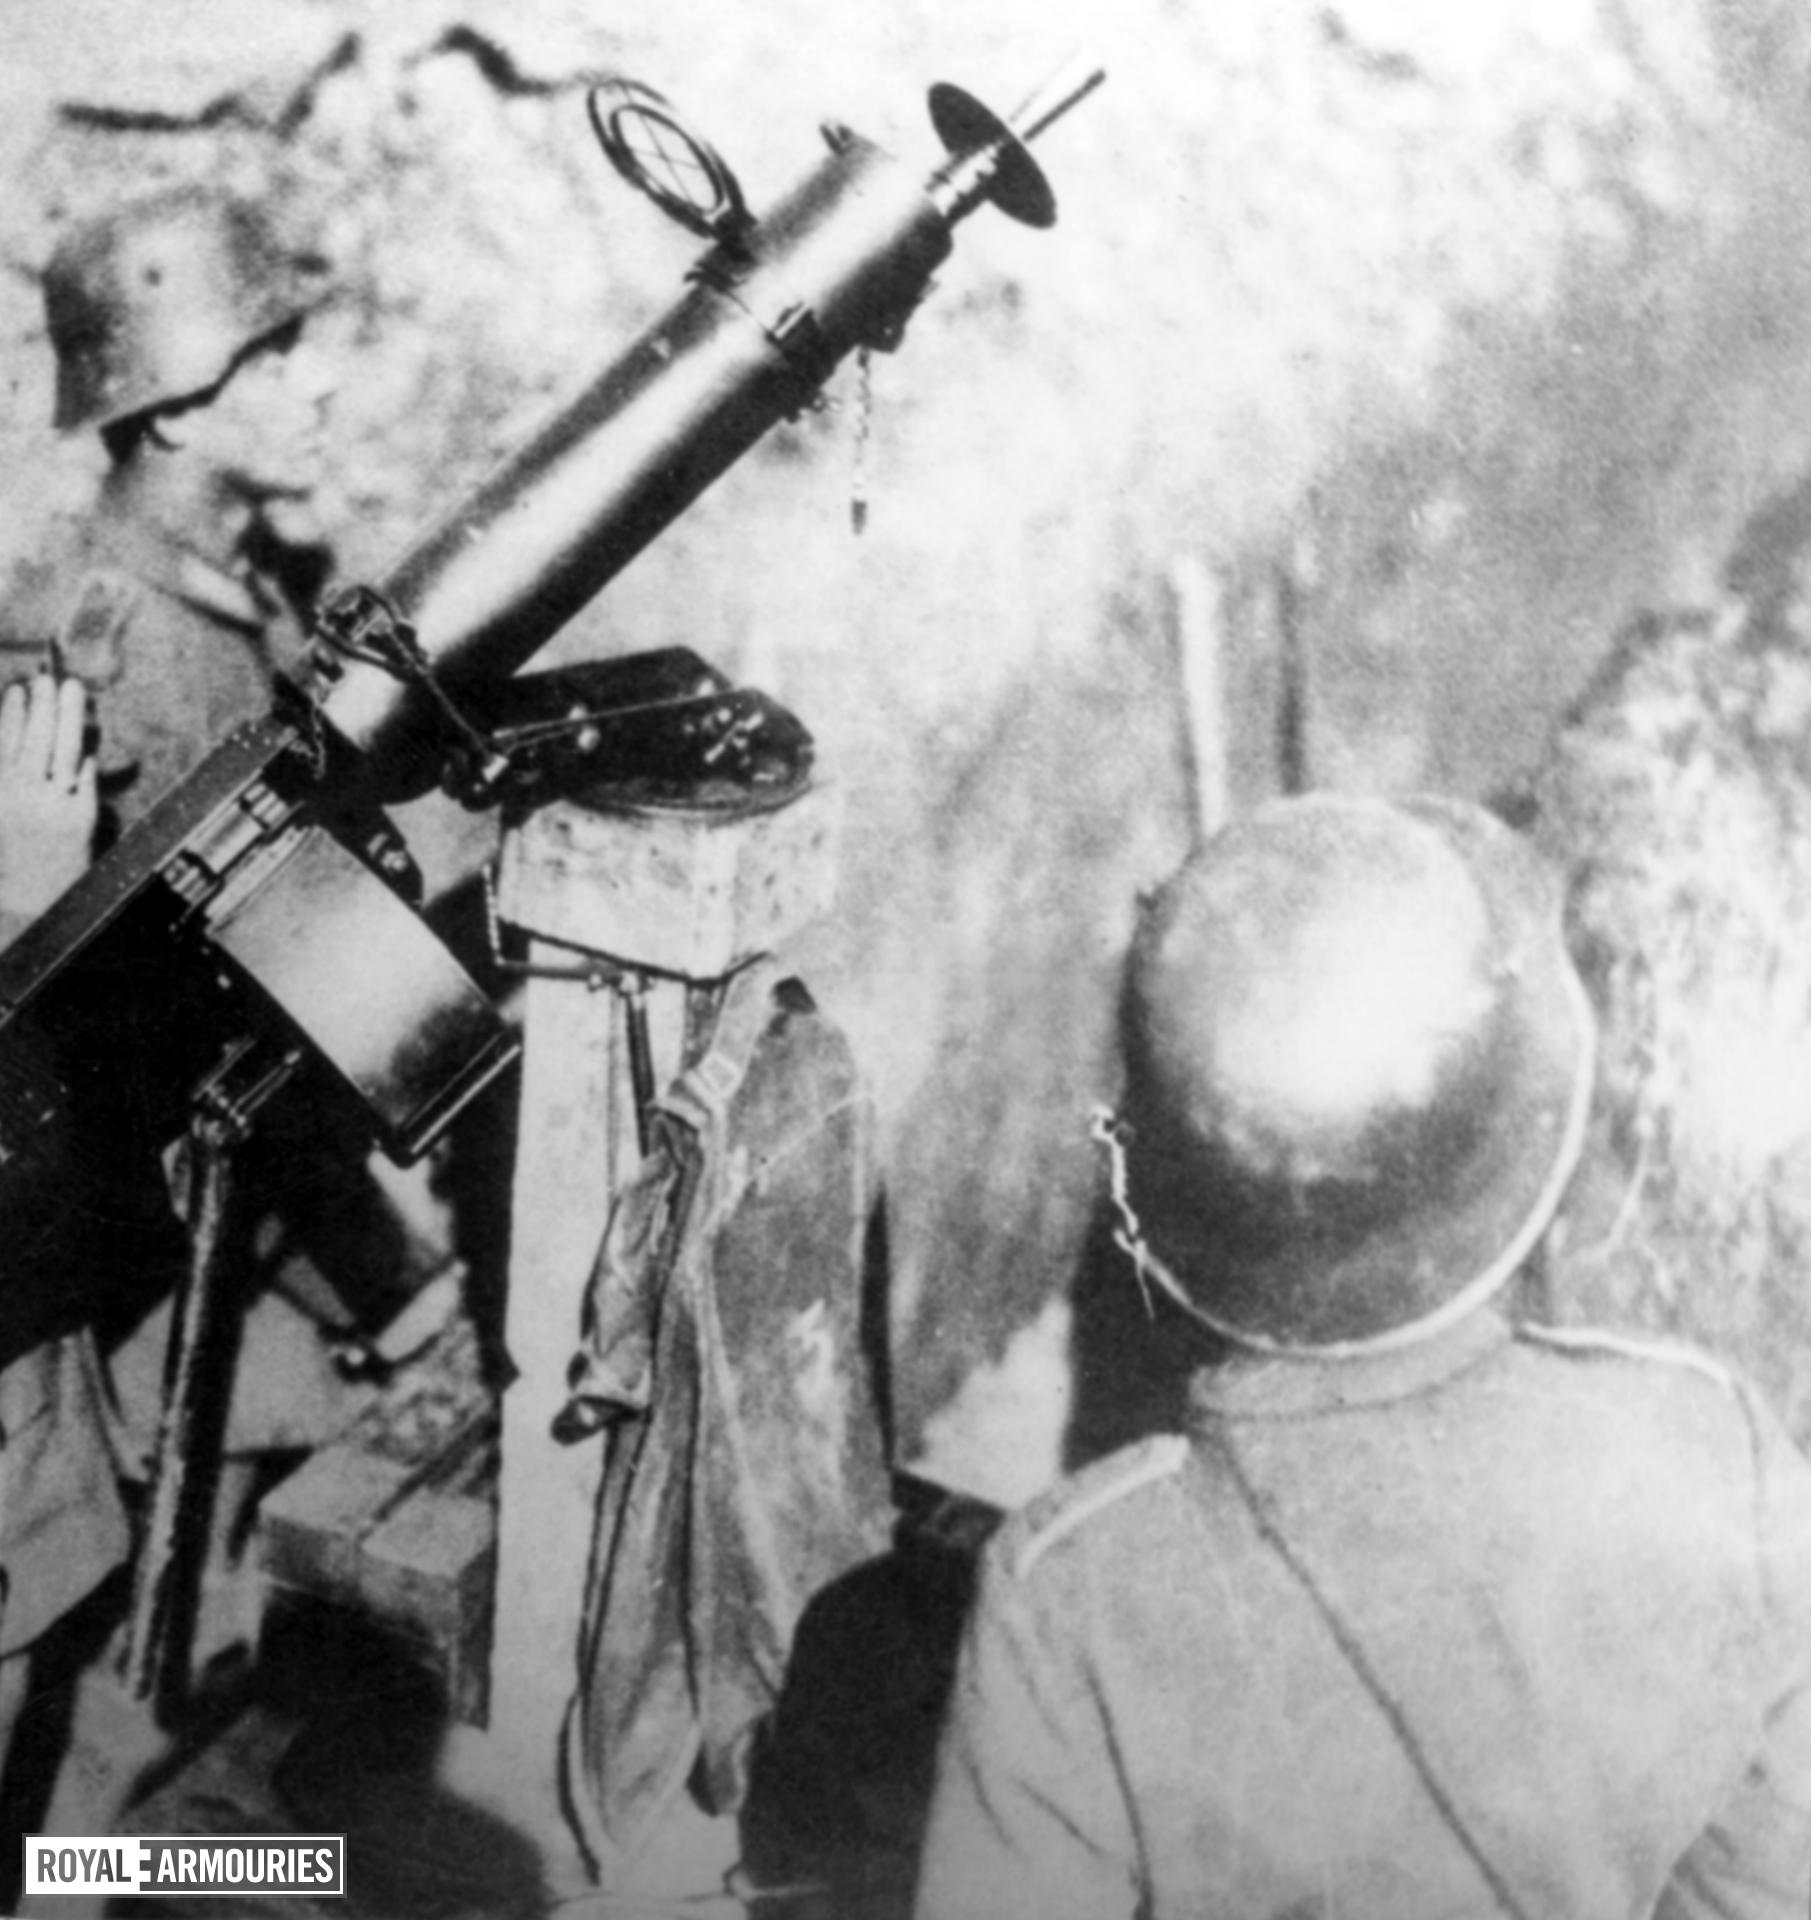 Photograph showing the German MG 08 centrefire belt fed machine gun in use by two German soldiers.